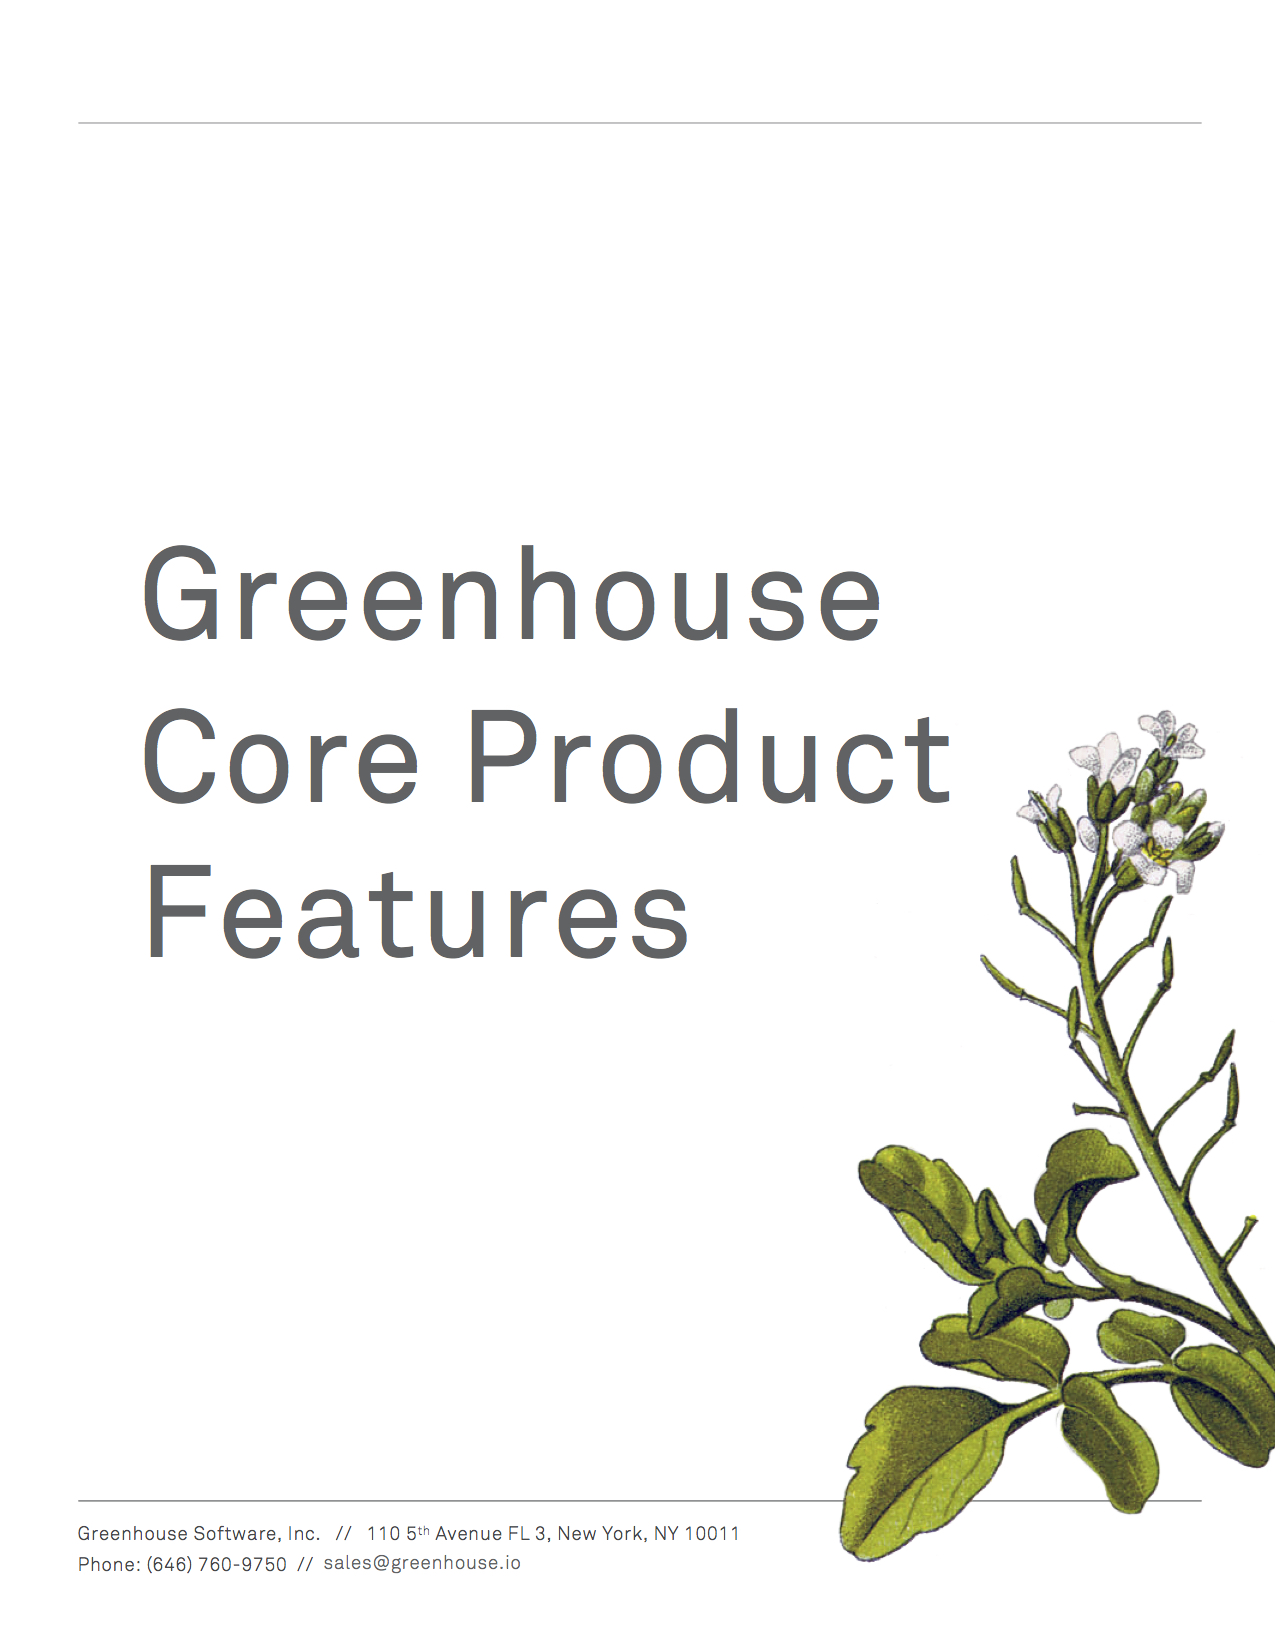 Greenhouse_Core_Product_Features.jpg